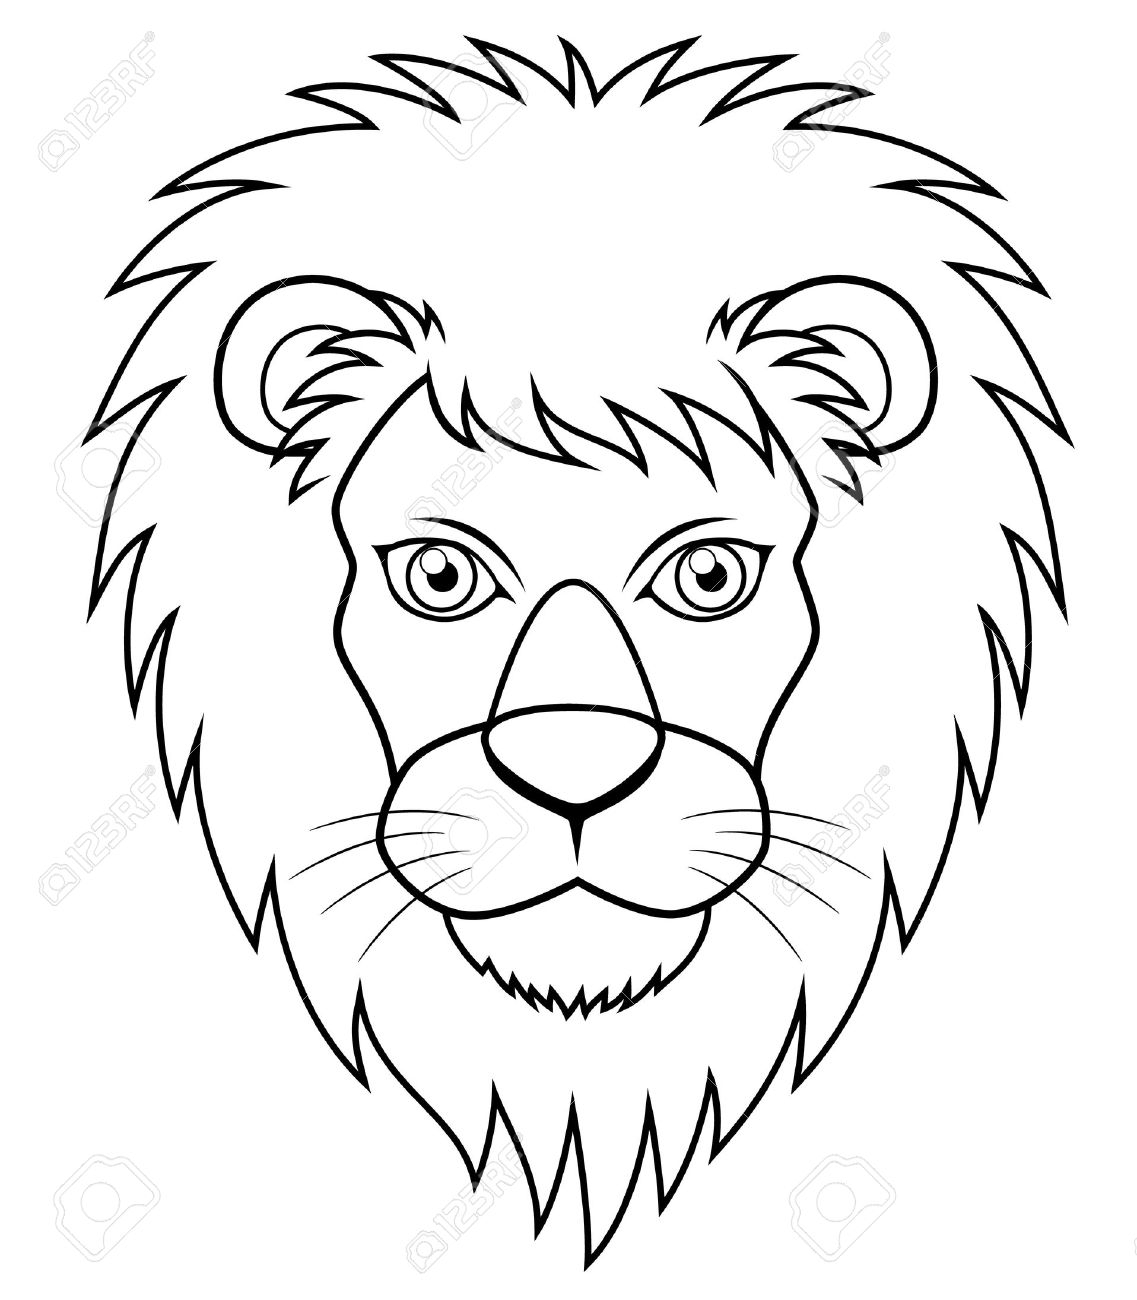 1137x1300 Cartoon Lion Drawing How To Draw Cartoons Lion